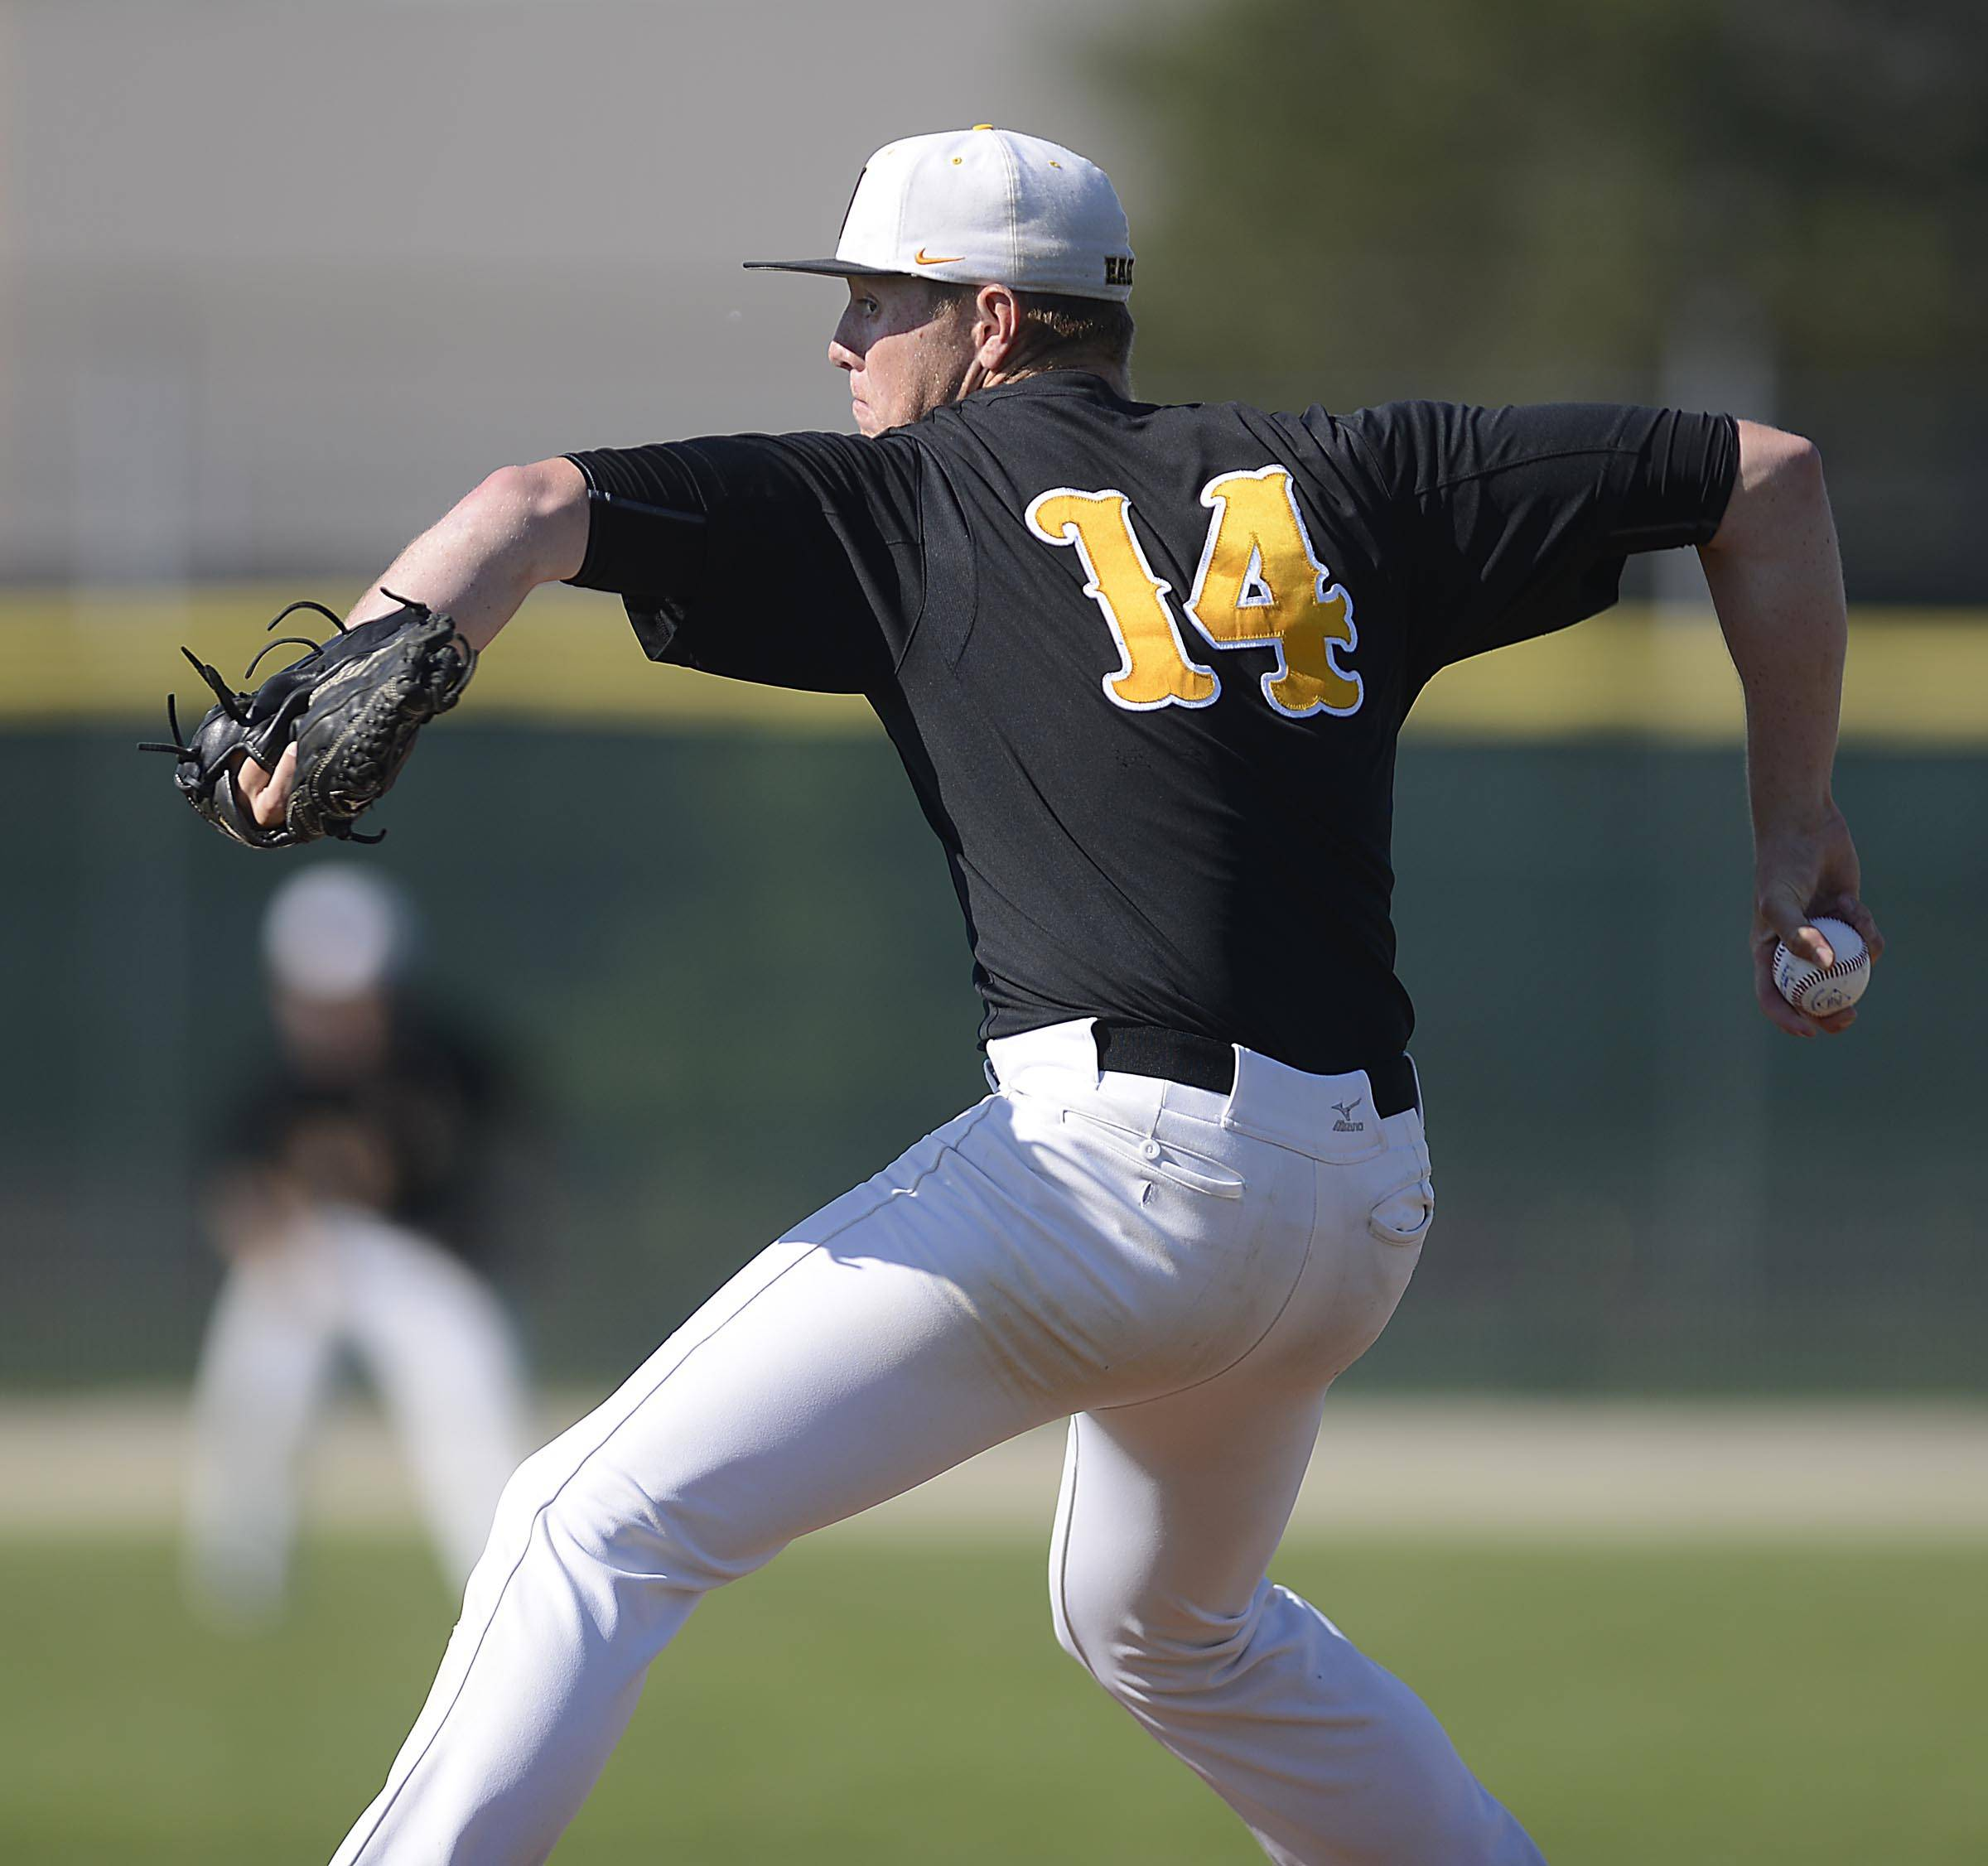 Jacobs starting pitcher Reilly Peltier against Cary-Grove Thursday in the Class 4A Crystal Lake South regional.